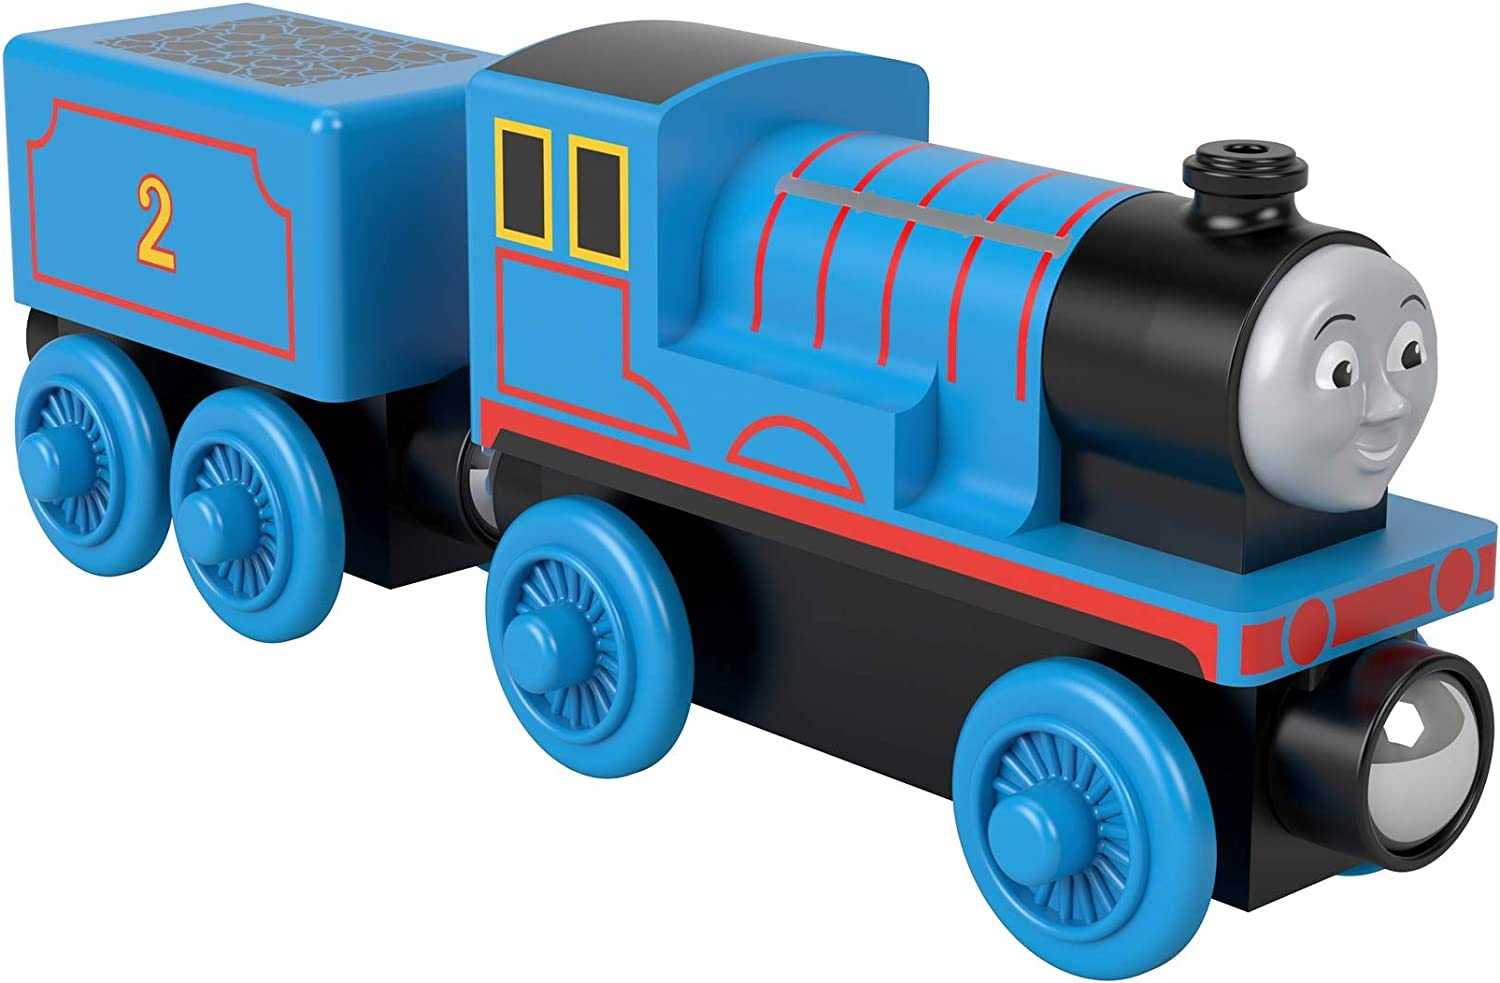 Thomas & Friends Wood Edward push-along train engine for toddlers and preschool kids ages 2 years and up